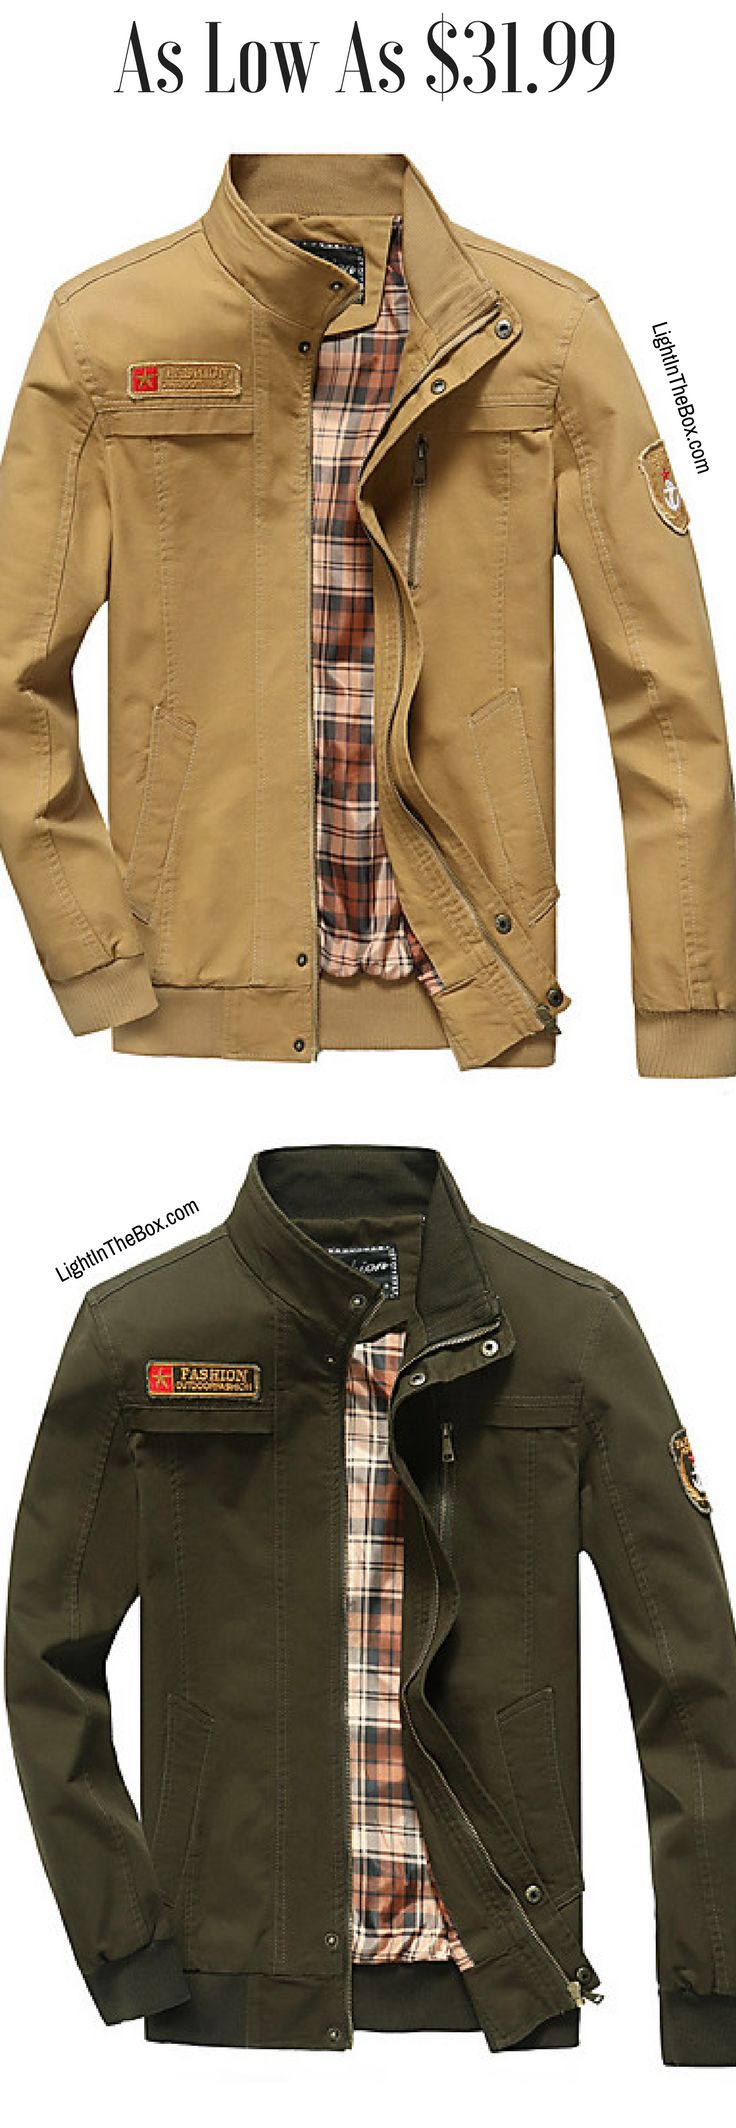 High collar jacket is ideal for men who doesn't like scarfs. Click on the picture to find these casual men jackets for fall/ autumn (in beige, khaki, army green and black colours = $31.99).